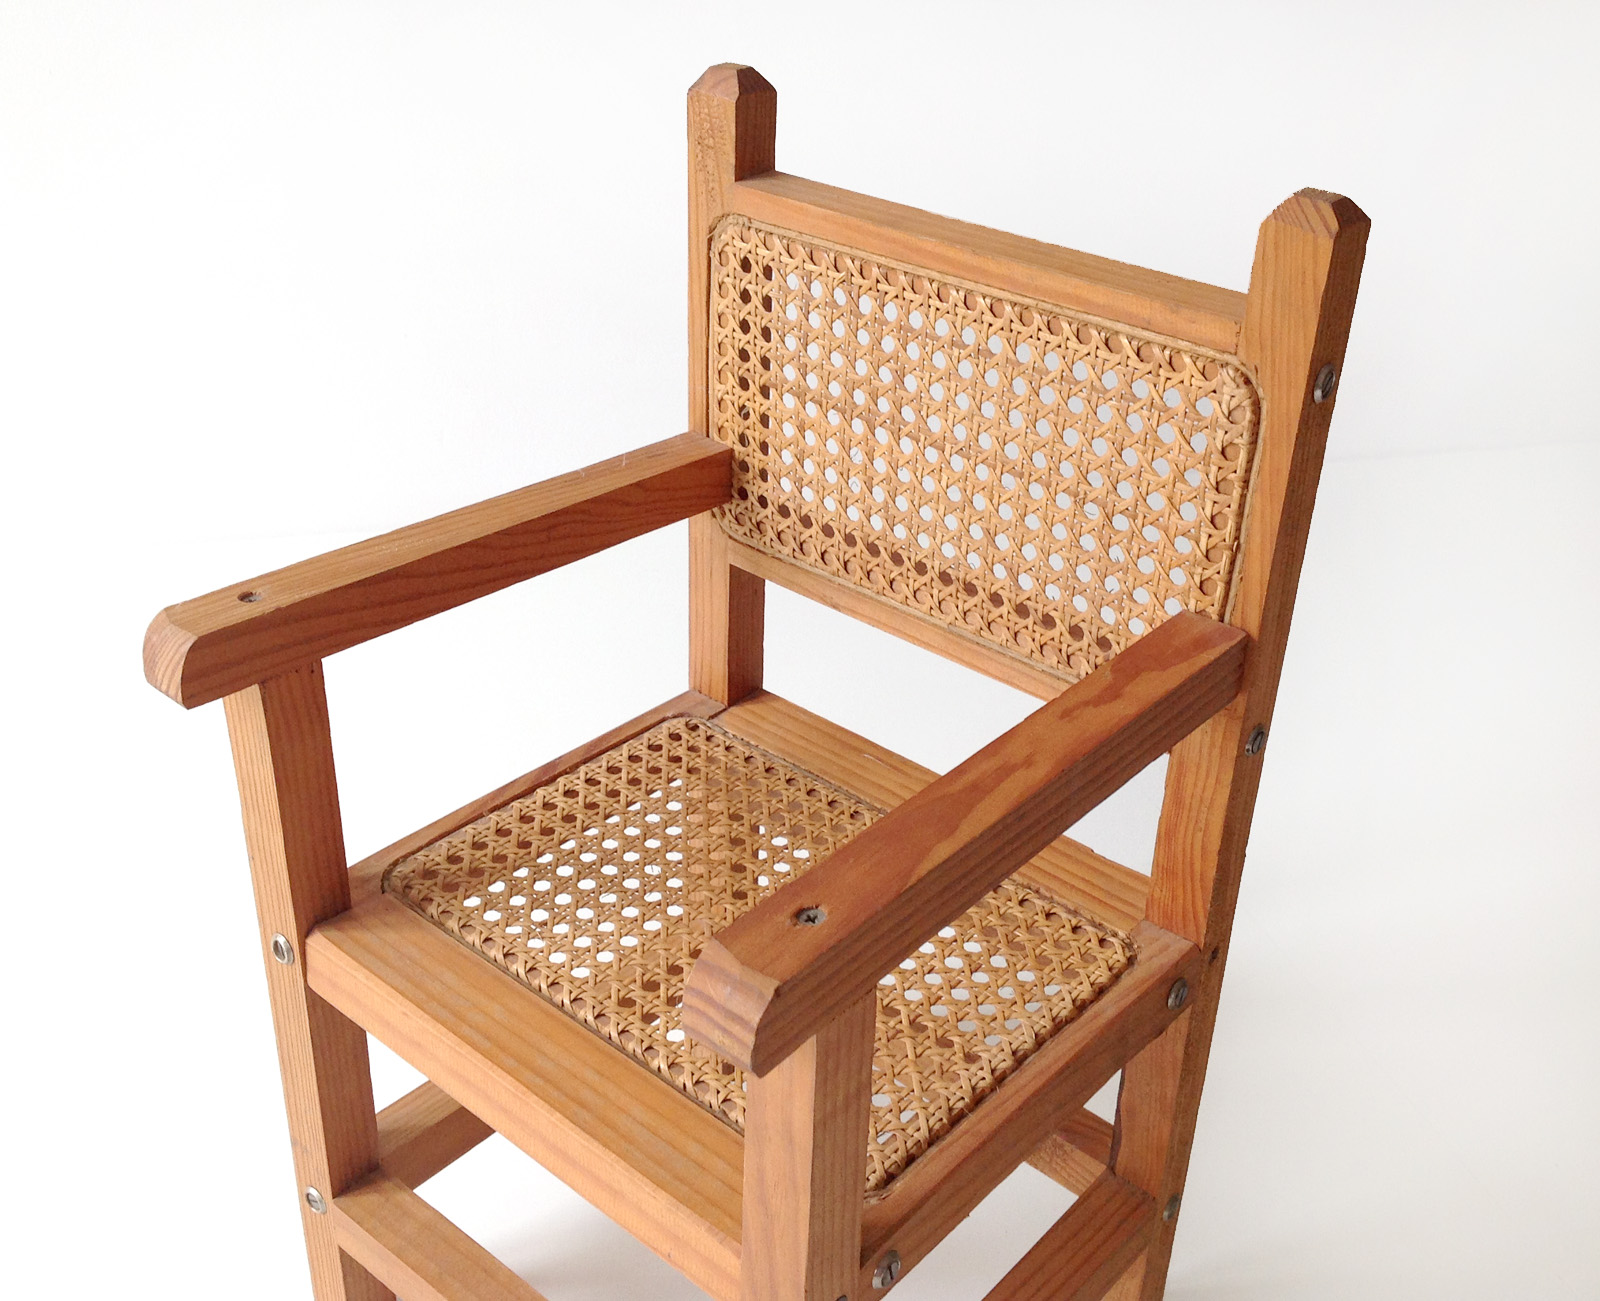 Child chair ref 108 va de vintage for 108 table seats how many